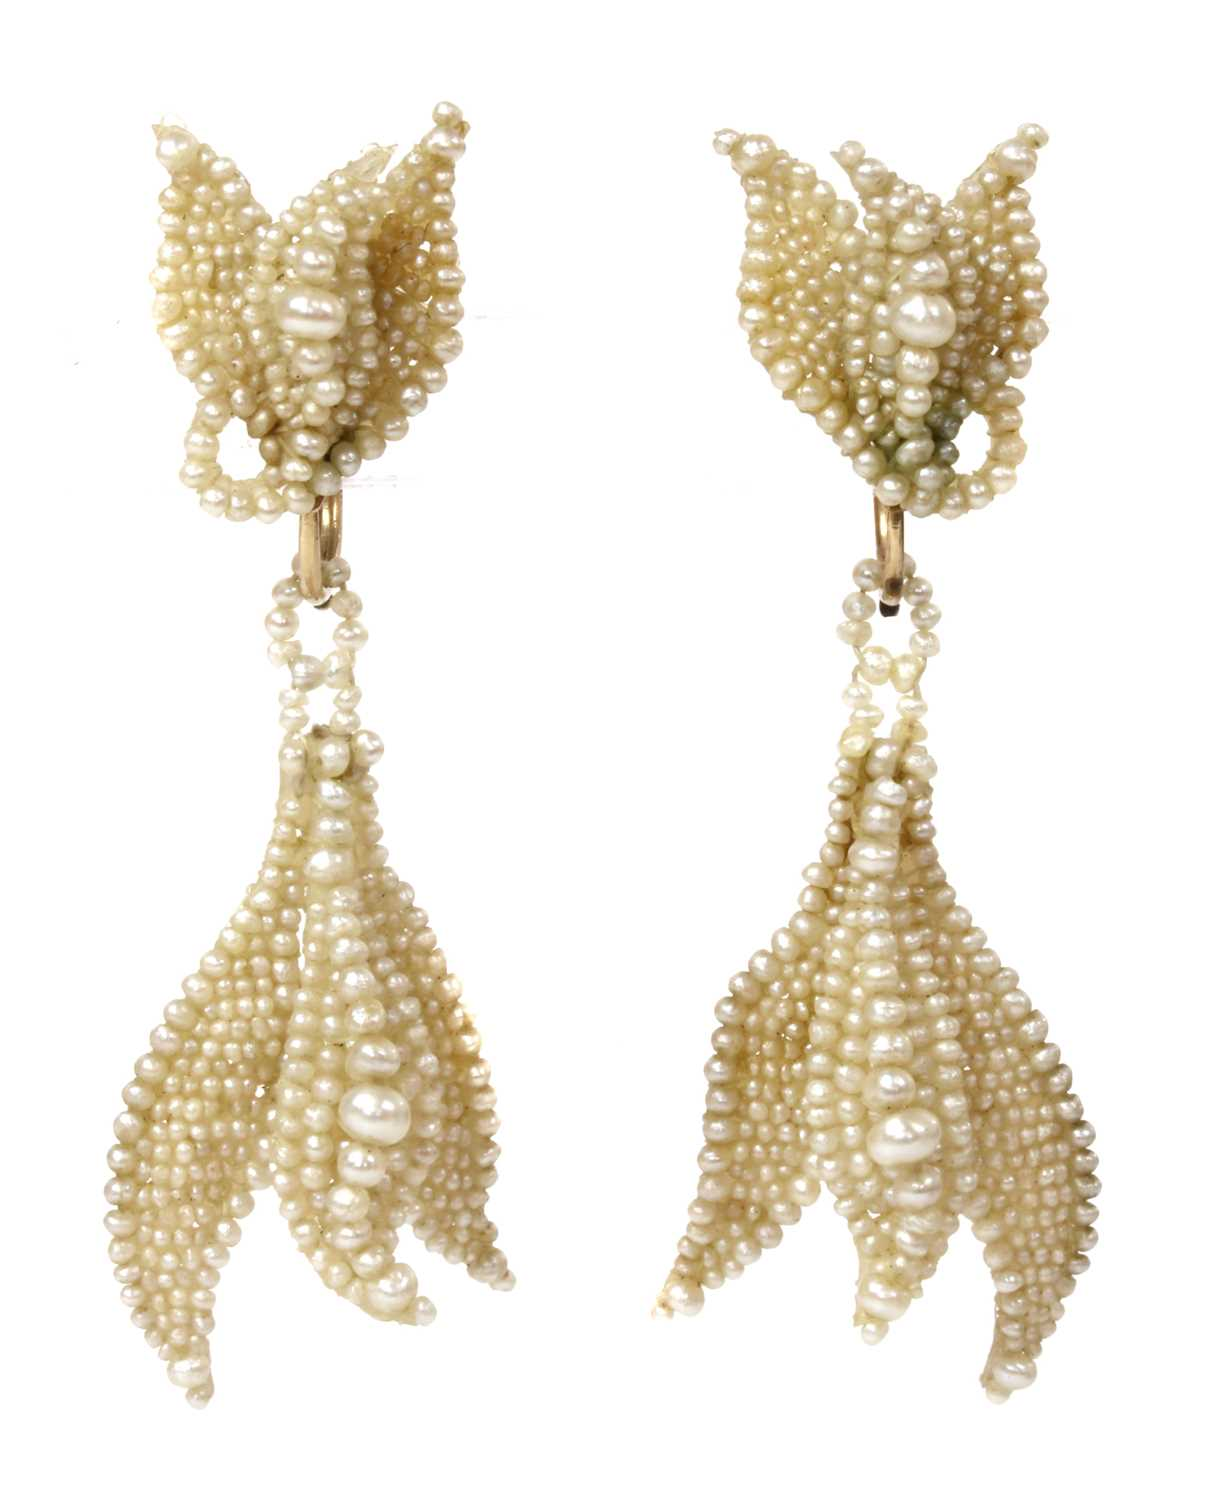 Lot 3 - A pair of early 19th century seed pearl drop earrings